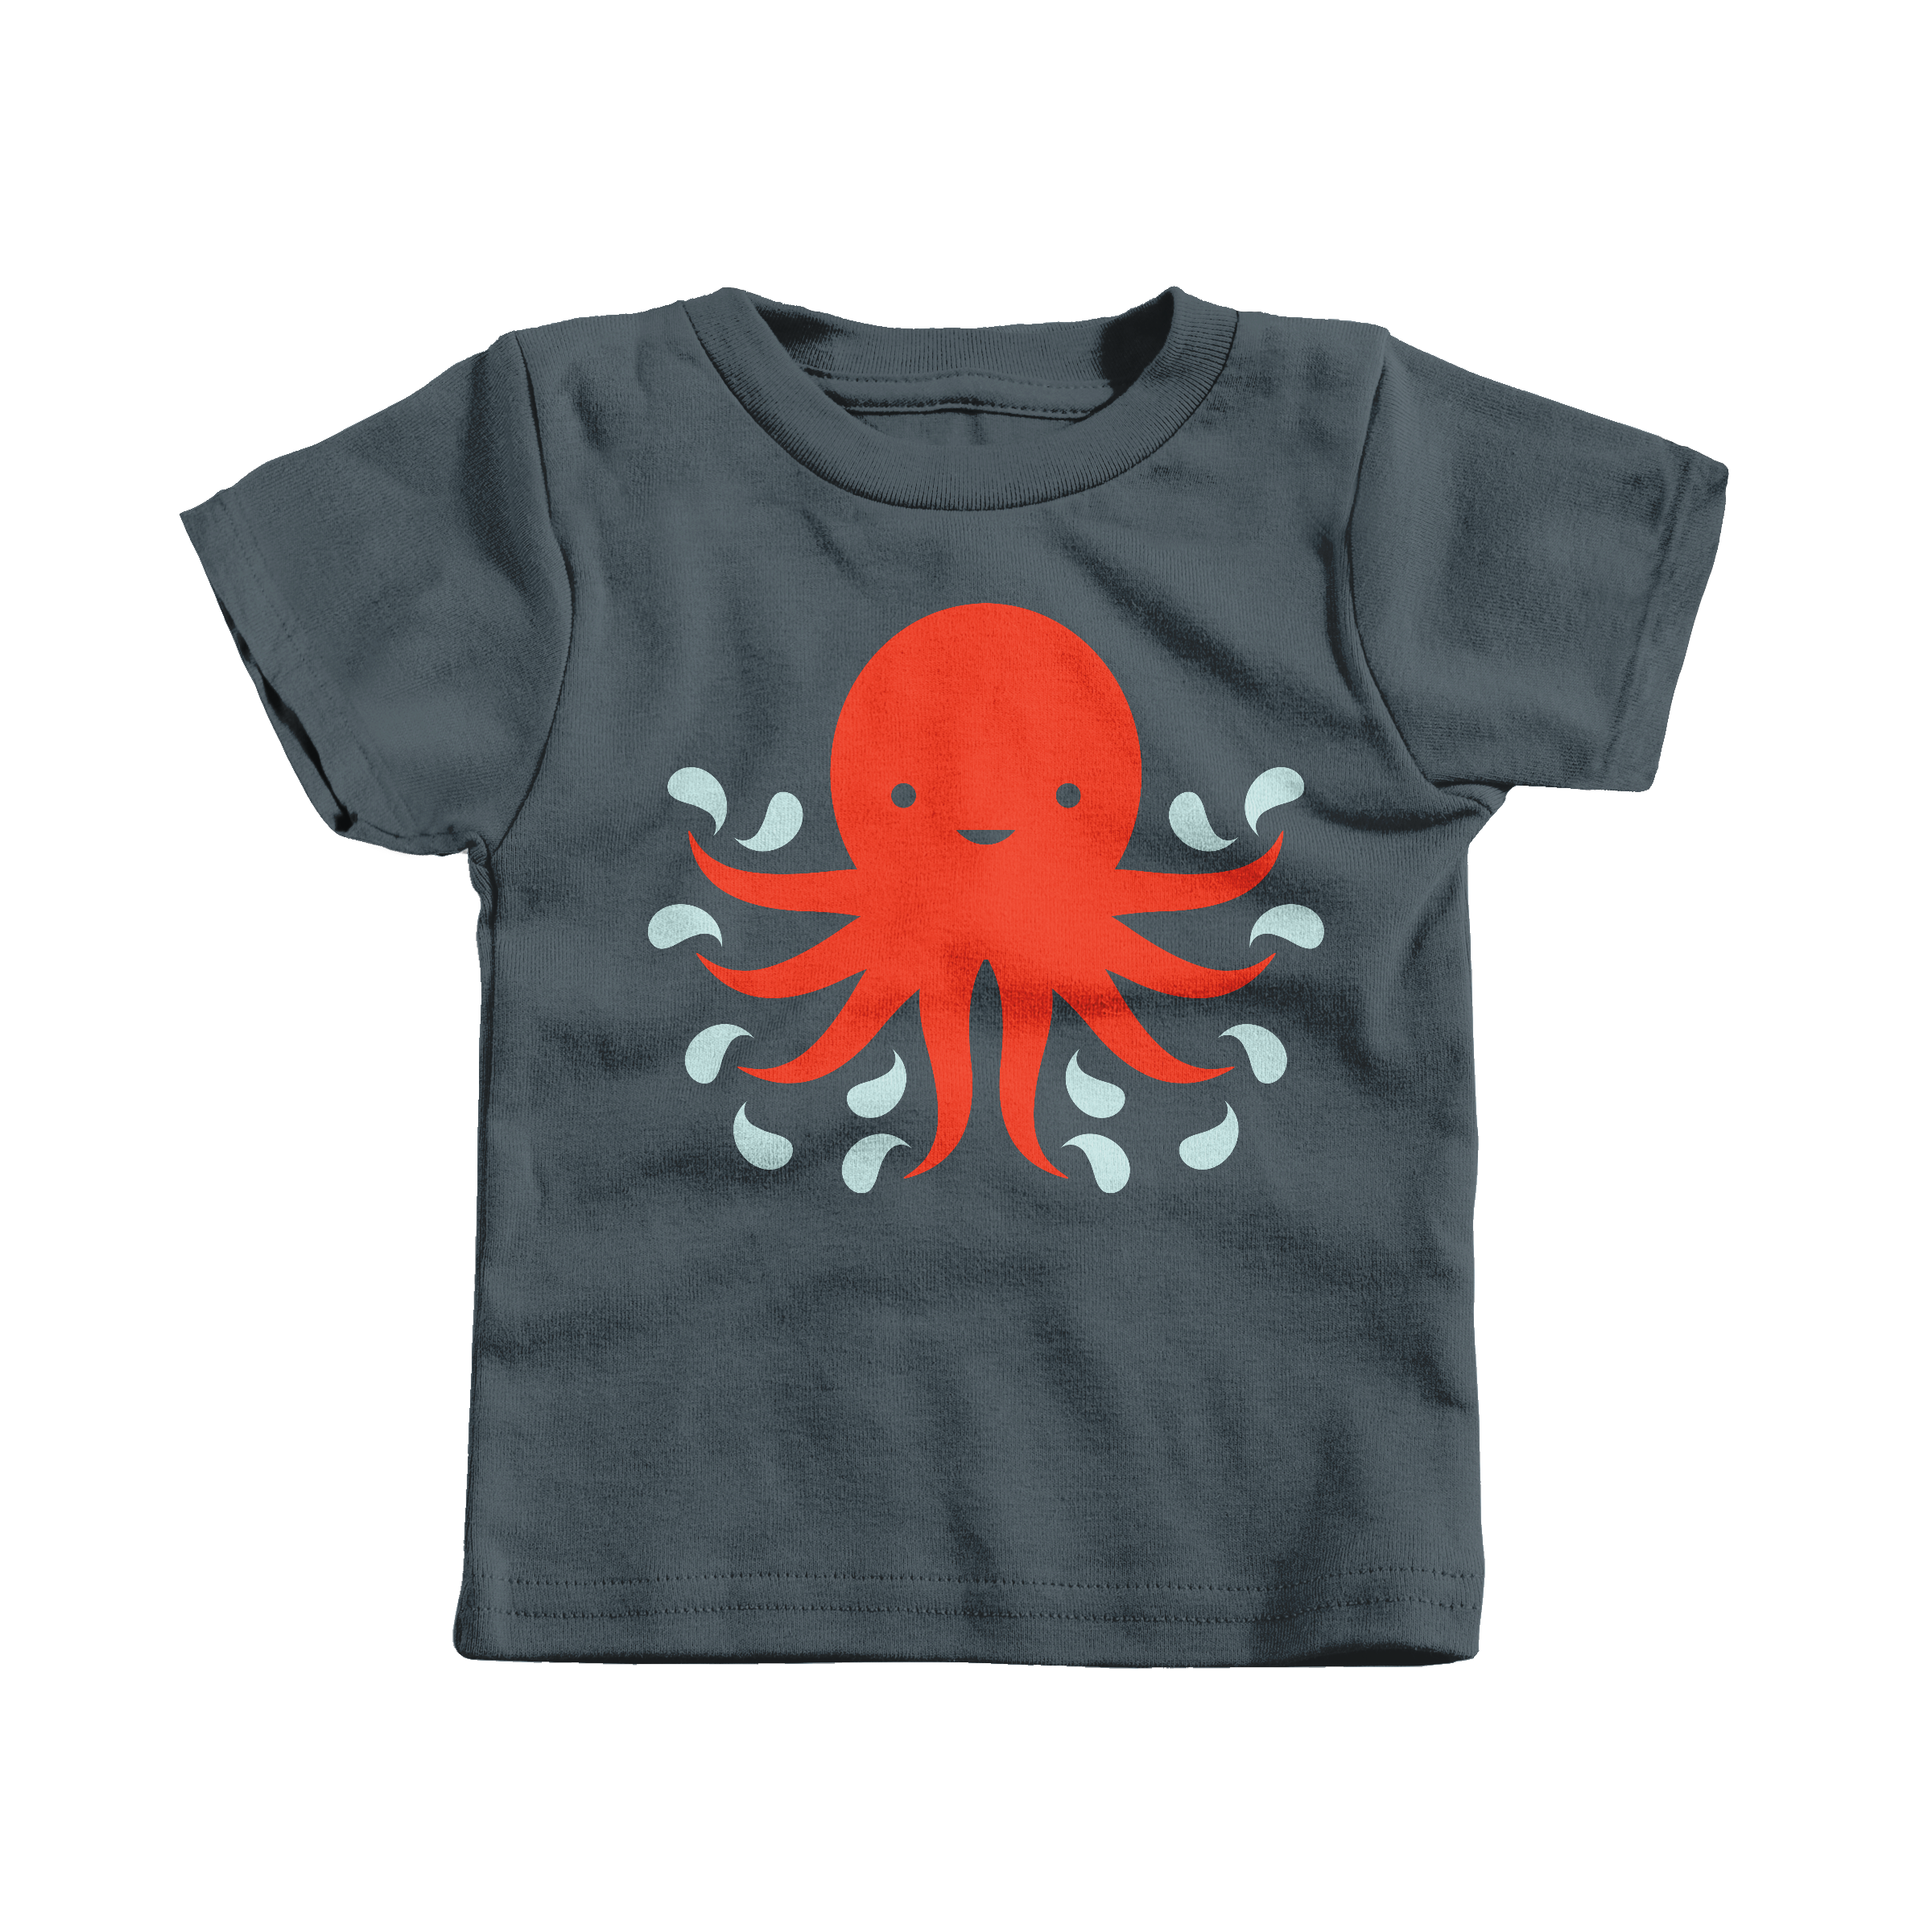 Splish Splash Charcoal (T-Shirt)